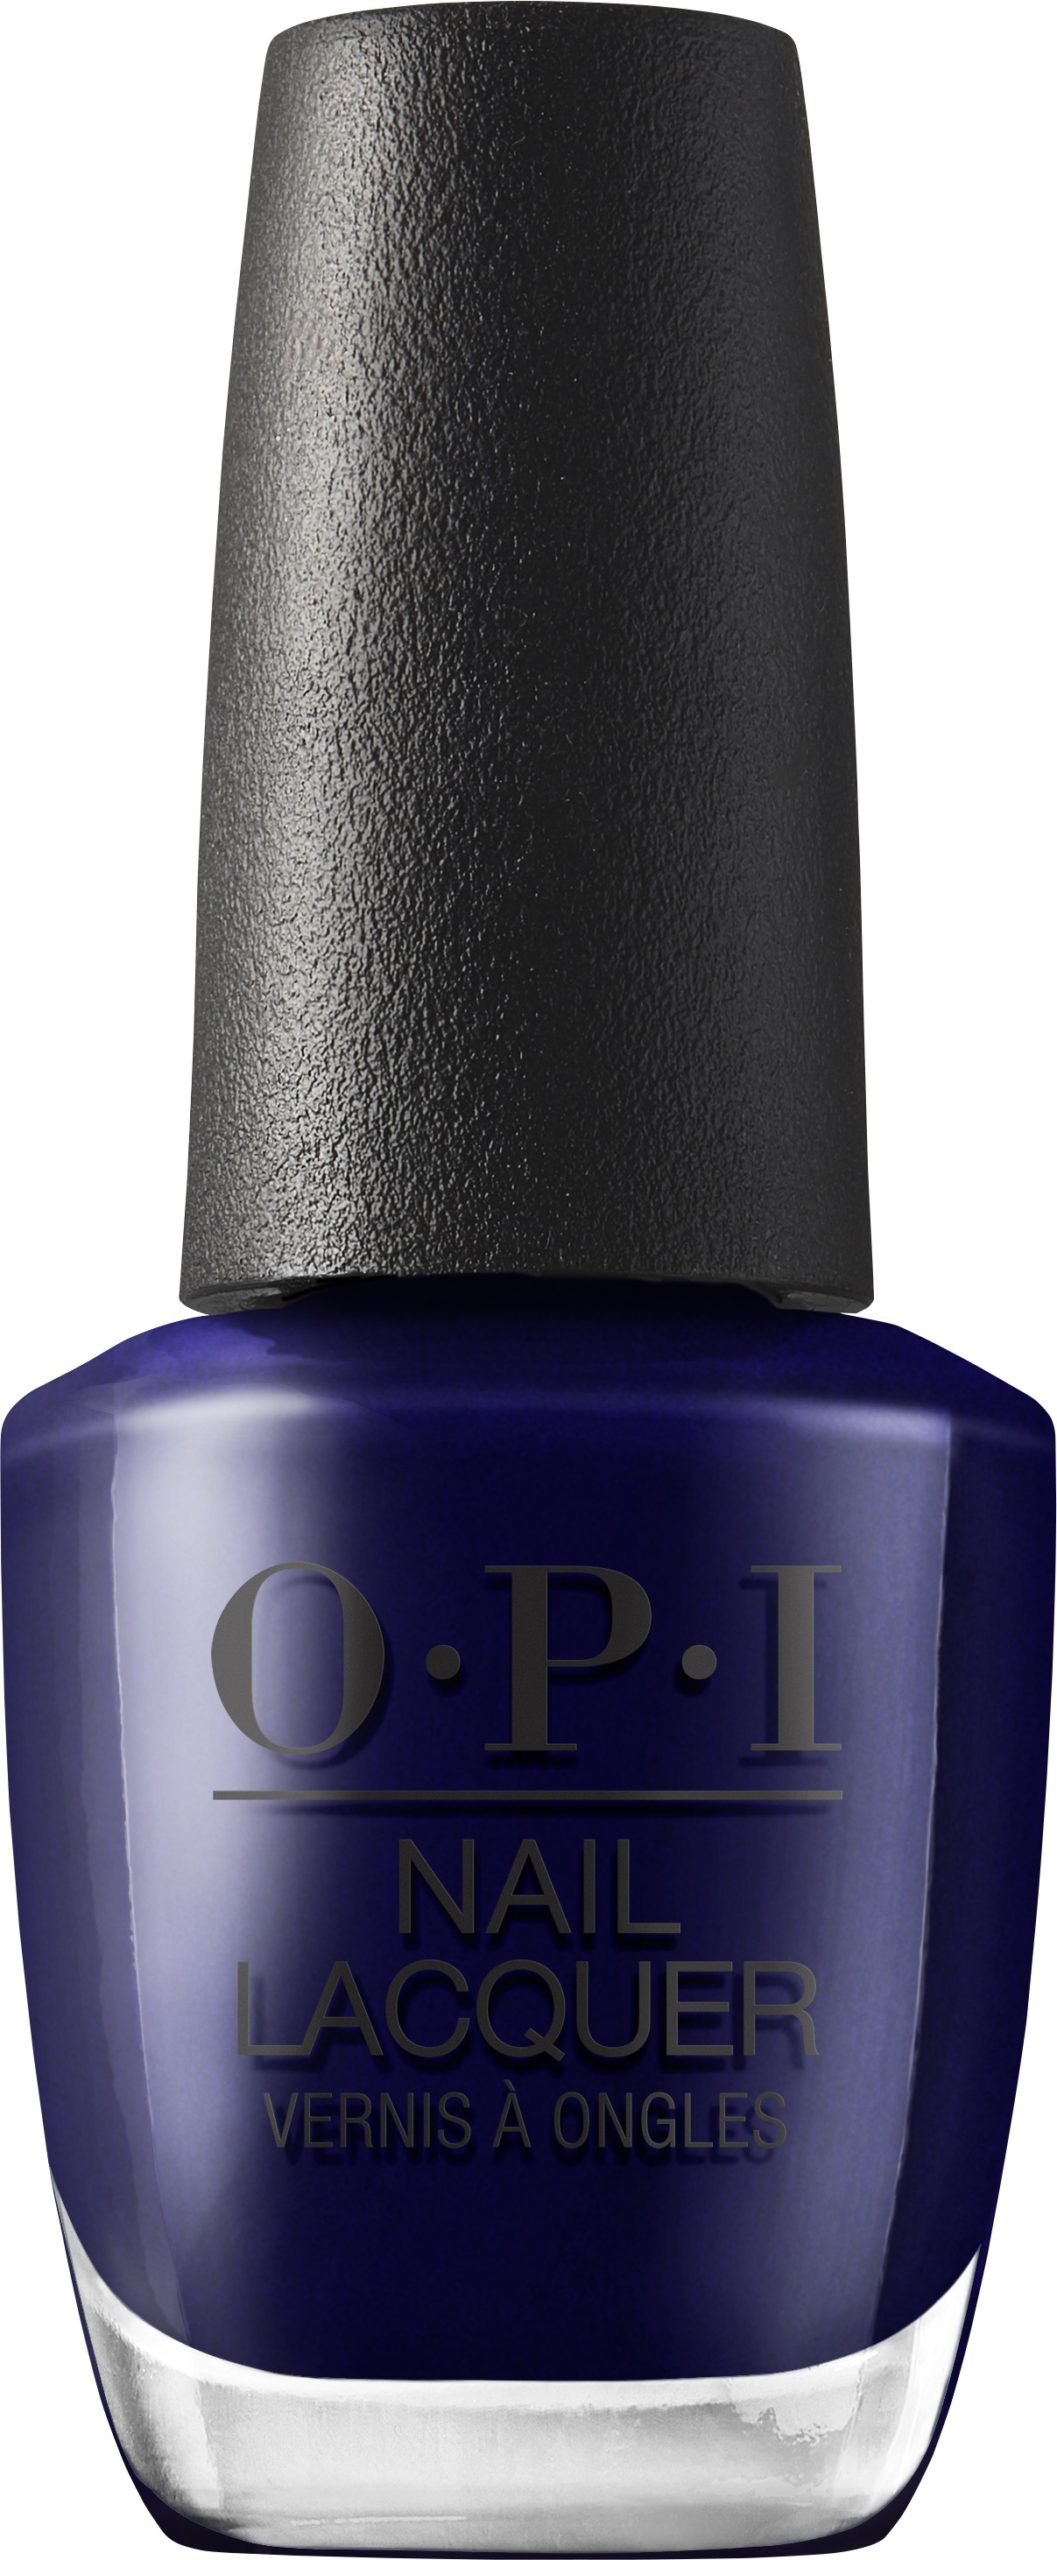 My Celebrity Life – OPI Award for Best Nails goes to Nail Lacquer